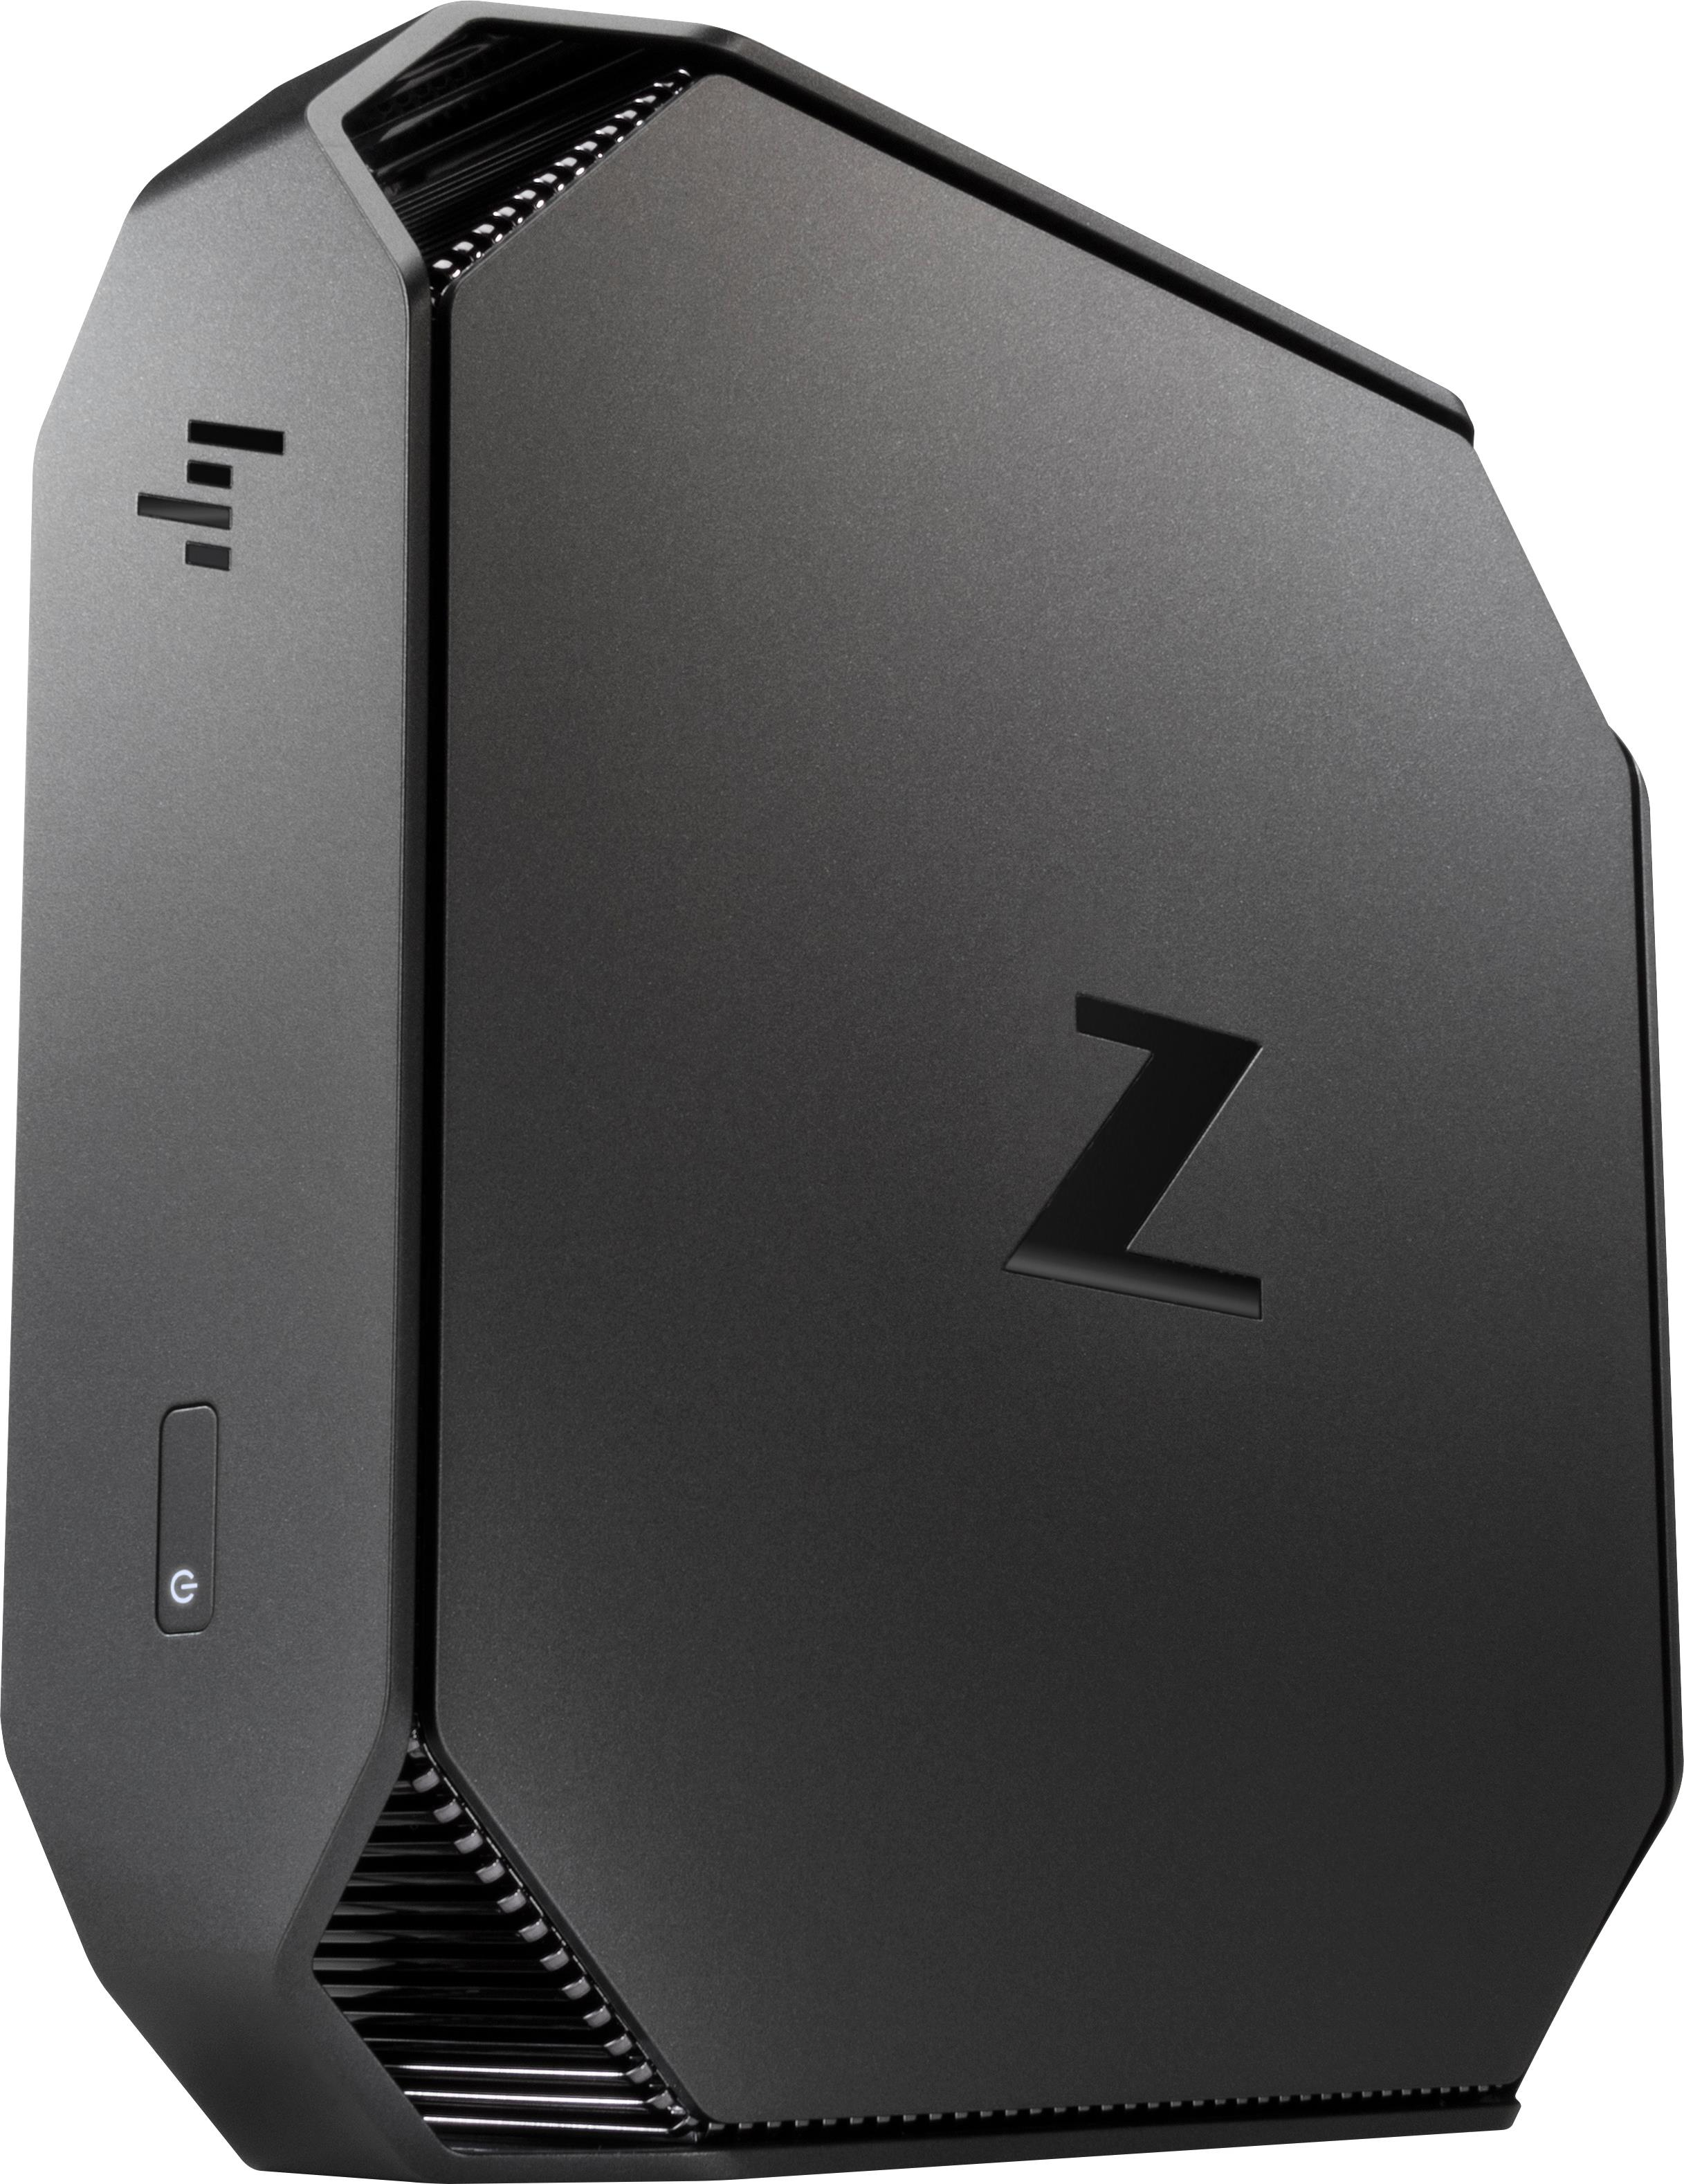 HP Z2 Mini G4 workstation